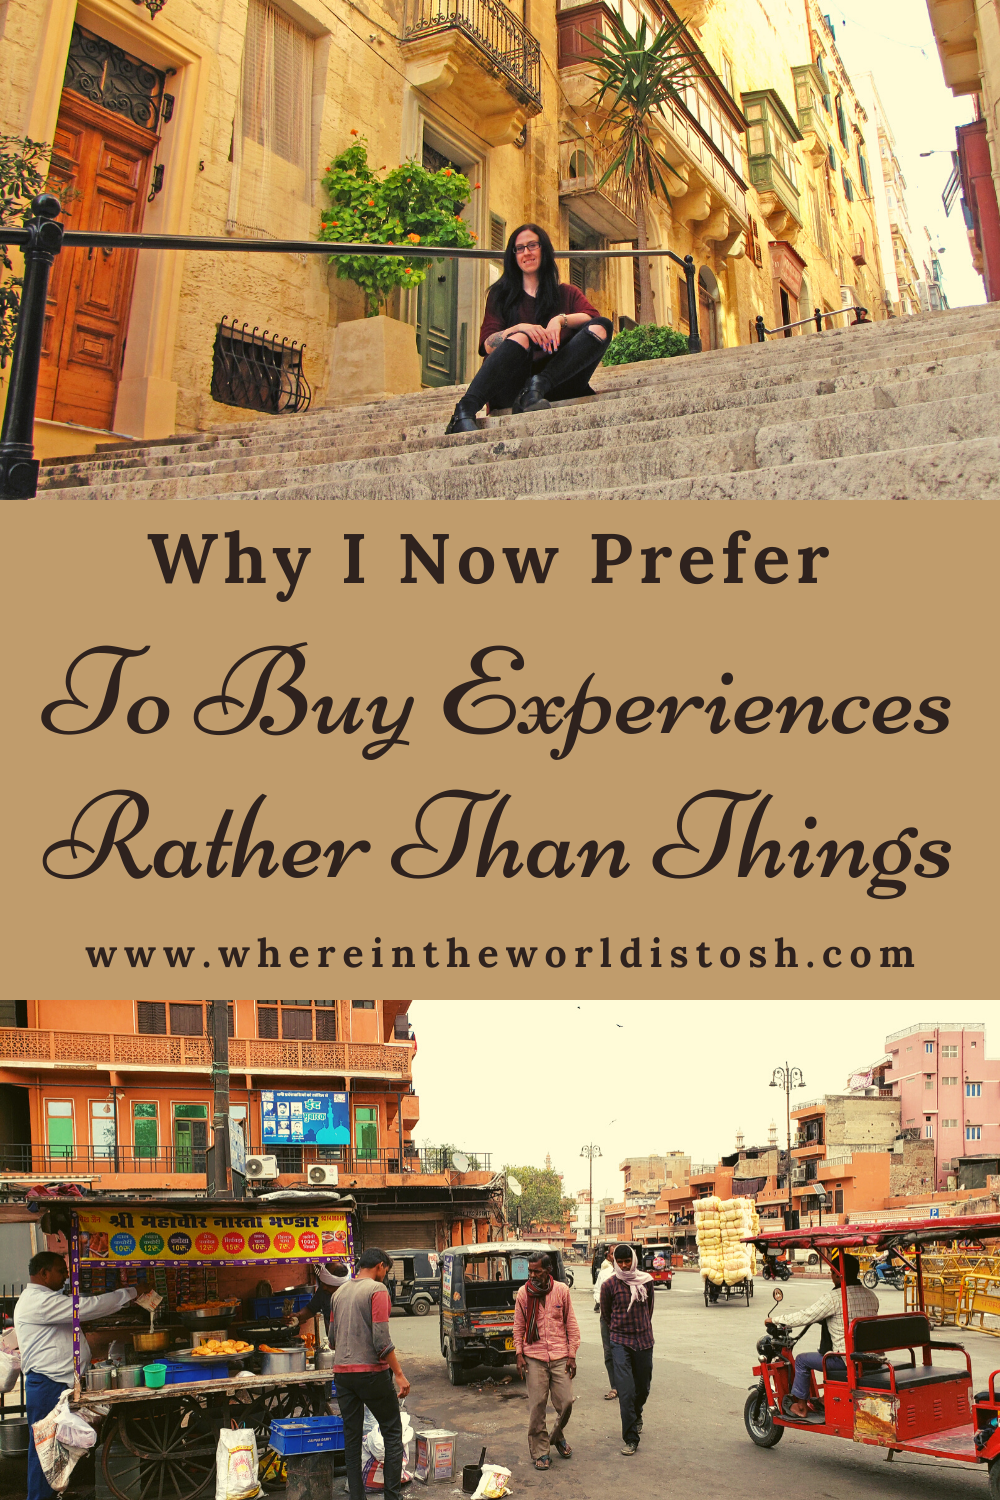 Why I Now Prefer To Buy Experiences Rather Than Things